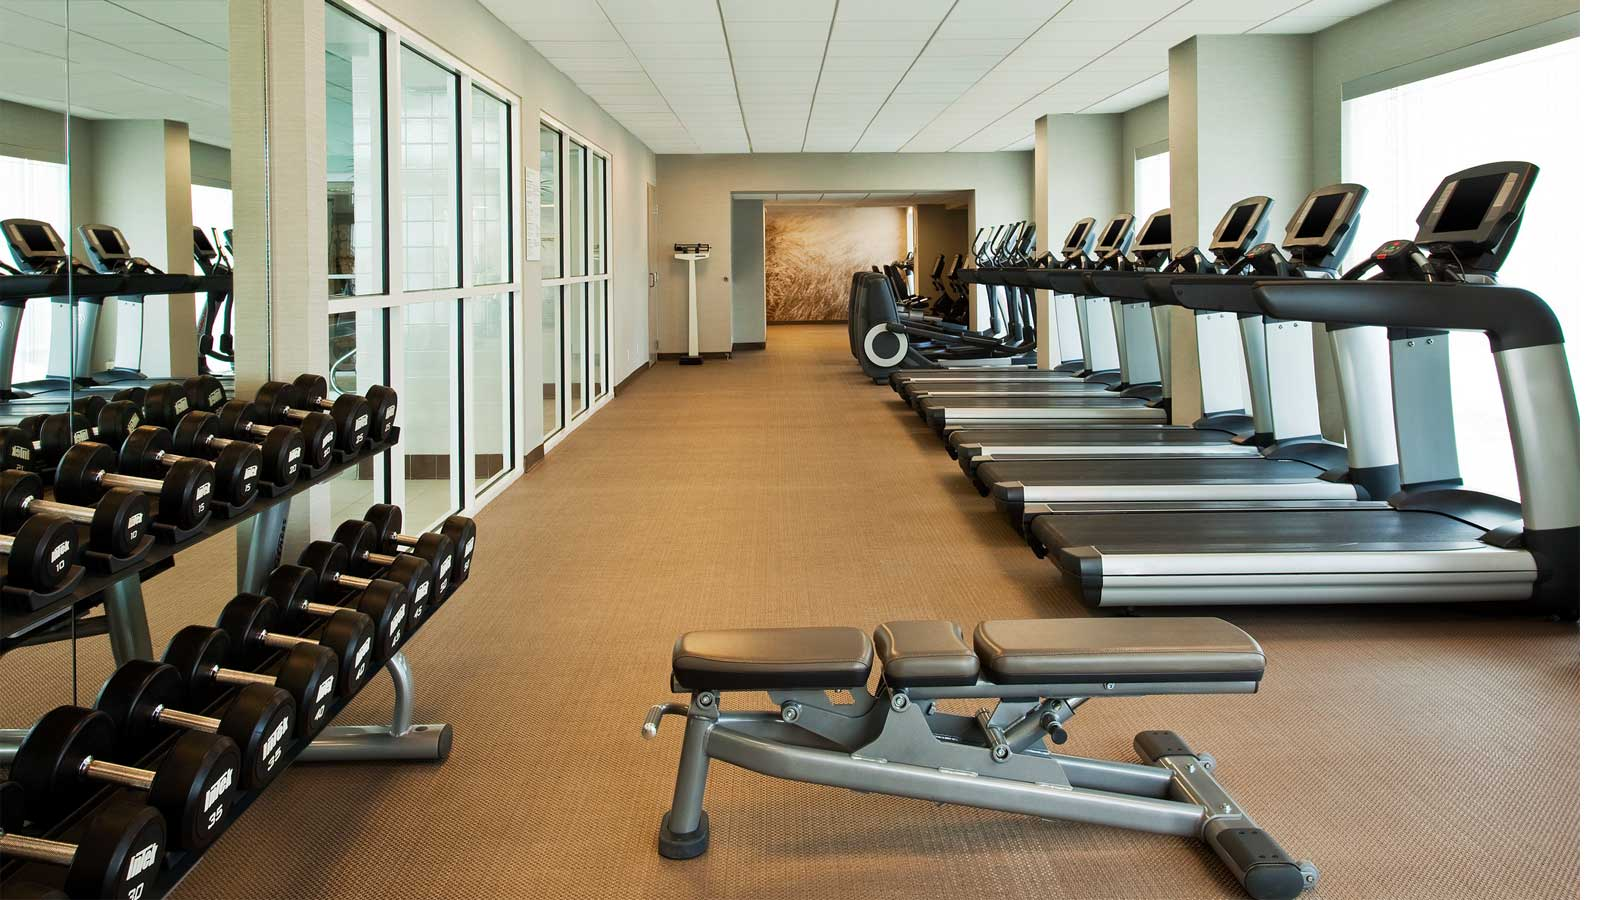 WestinWORKOUT® at The Westin Buckhead Atlanta